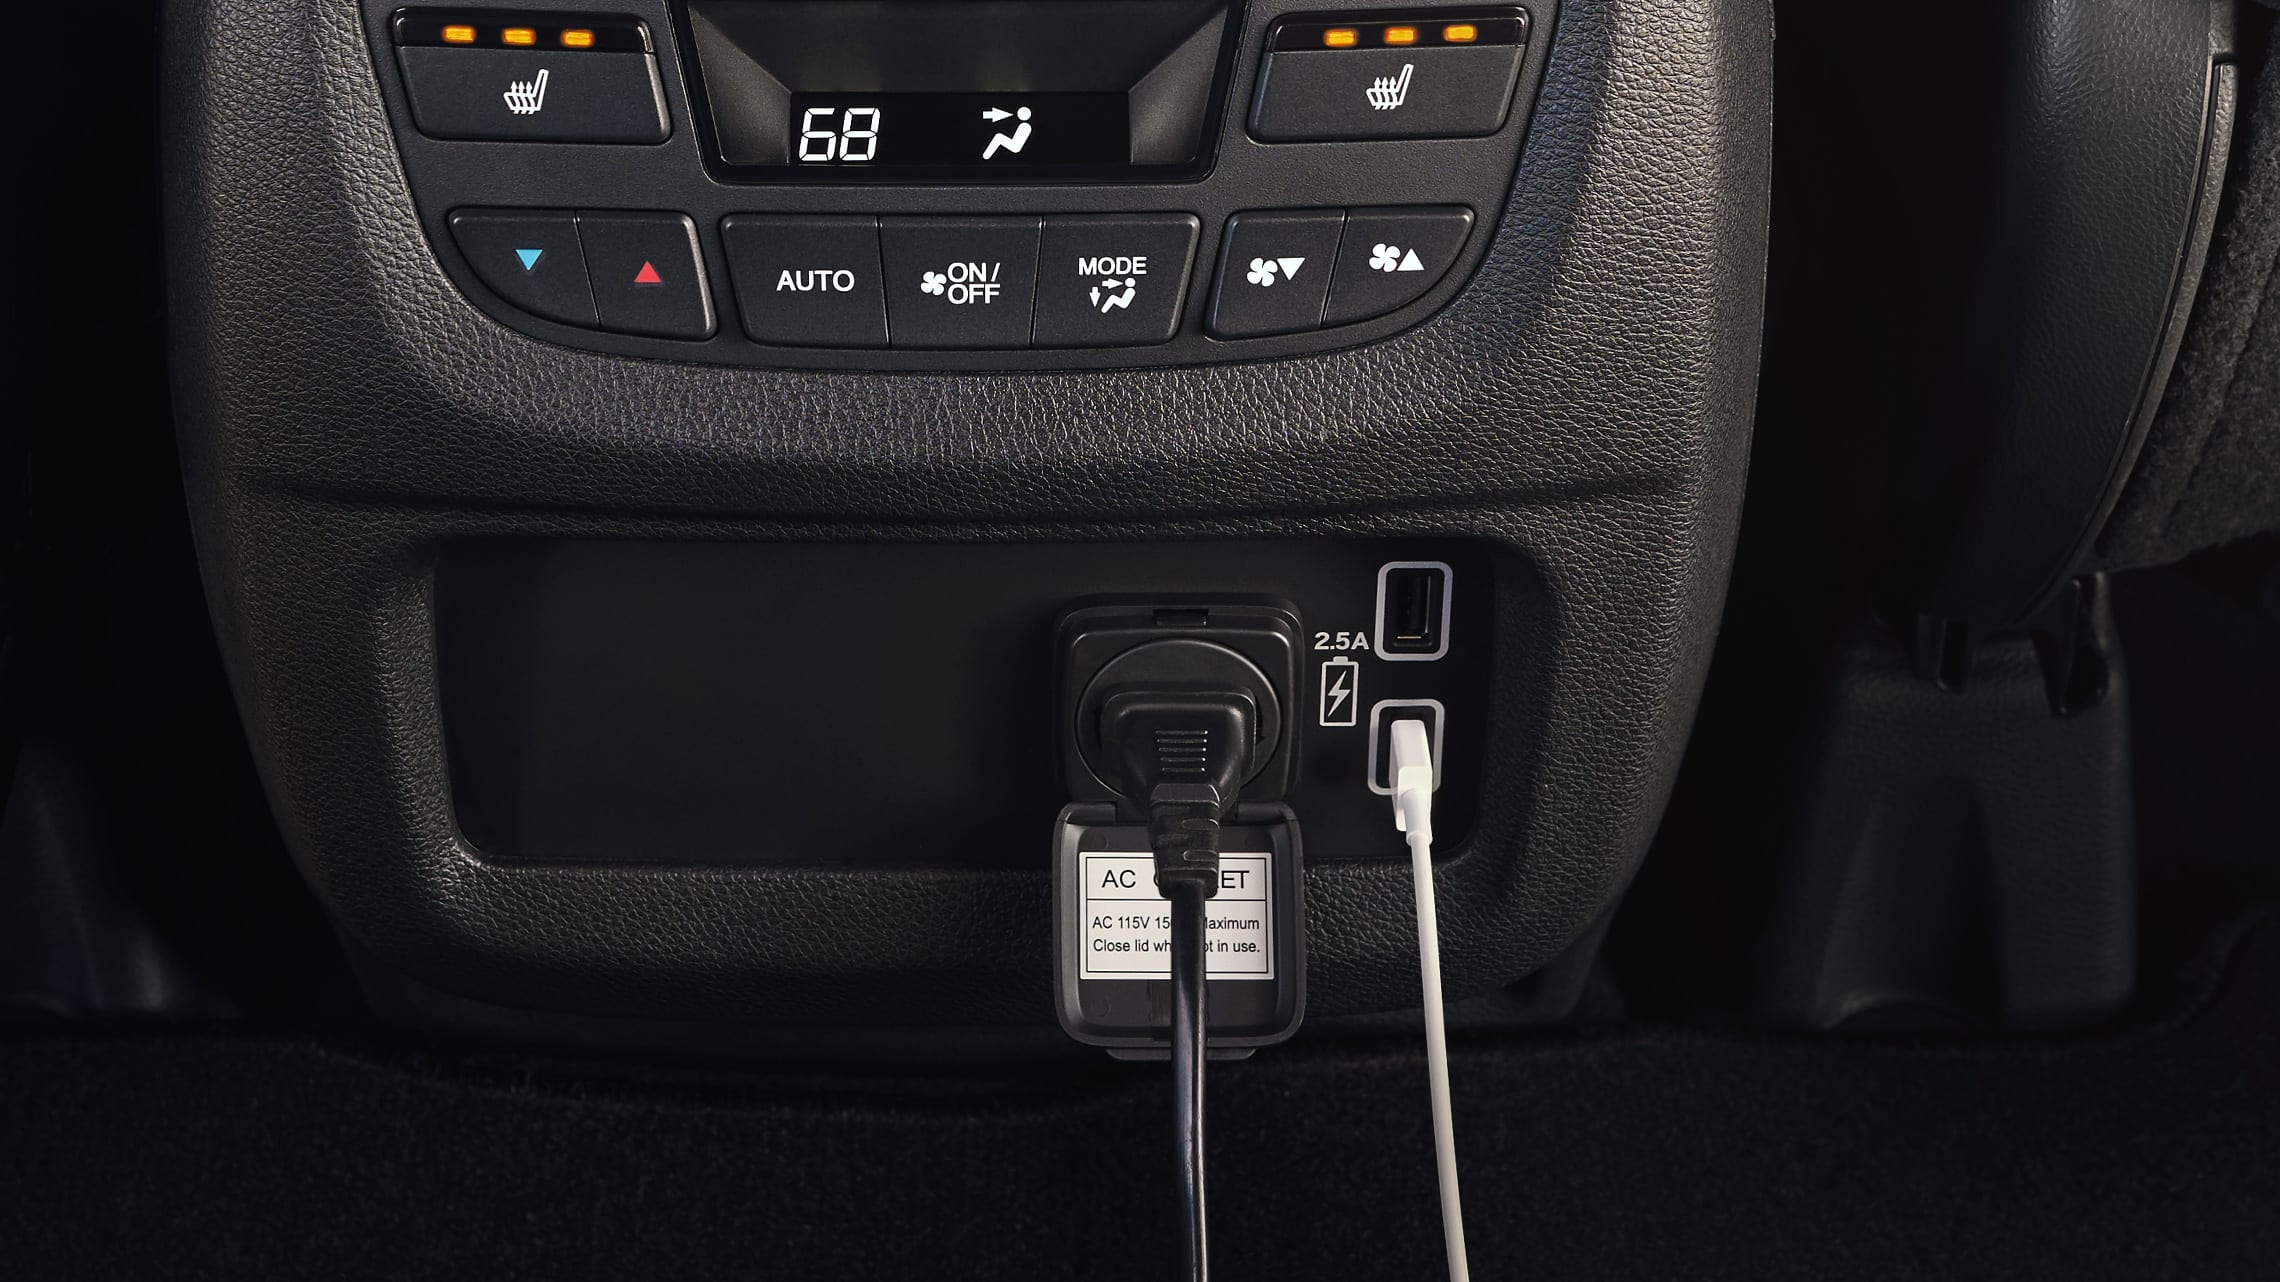 Interior view of 180-watt max power/120-volt AC power detail on the 2019 Honda Passport.